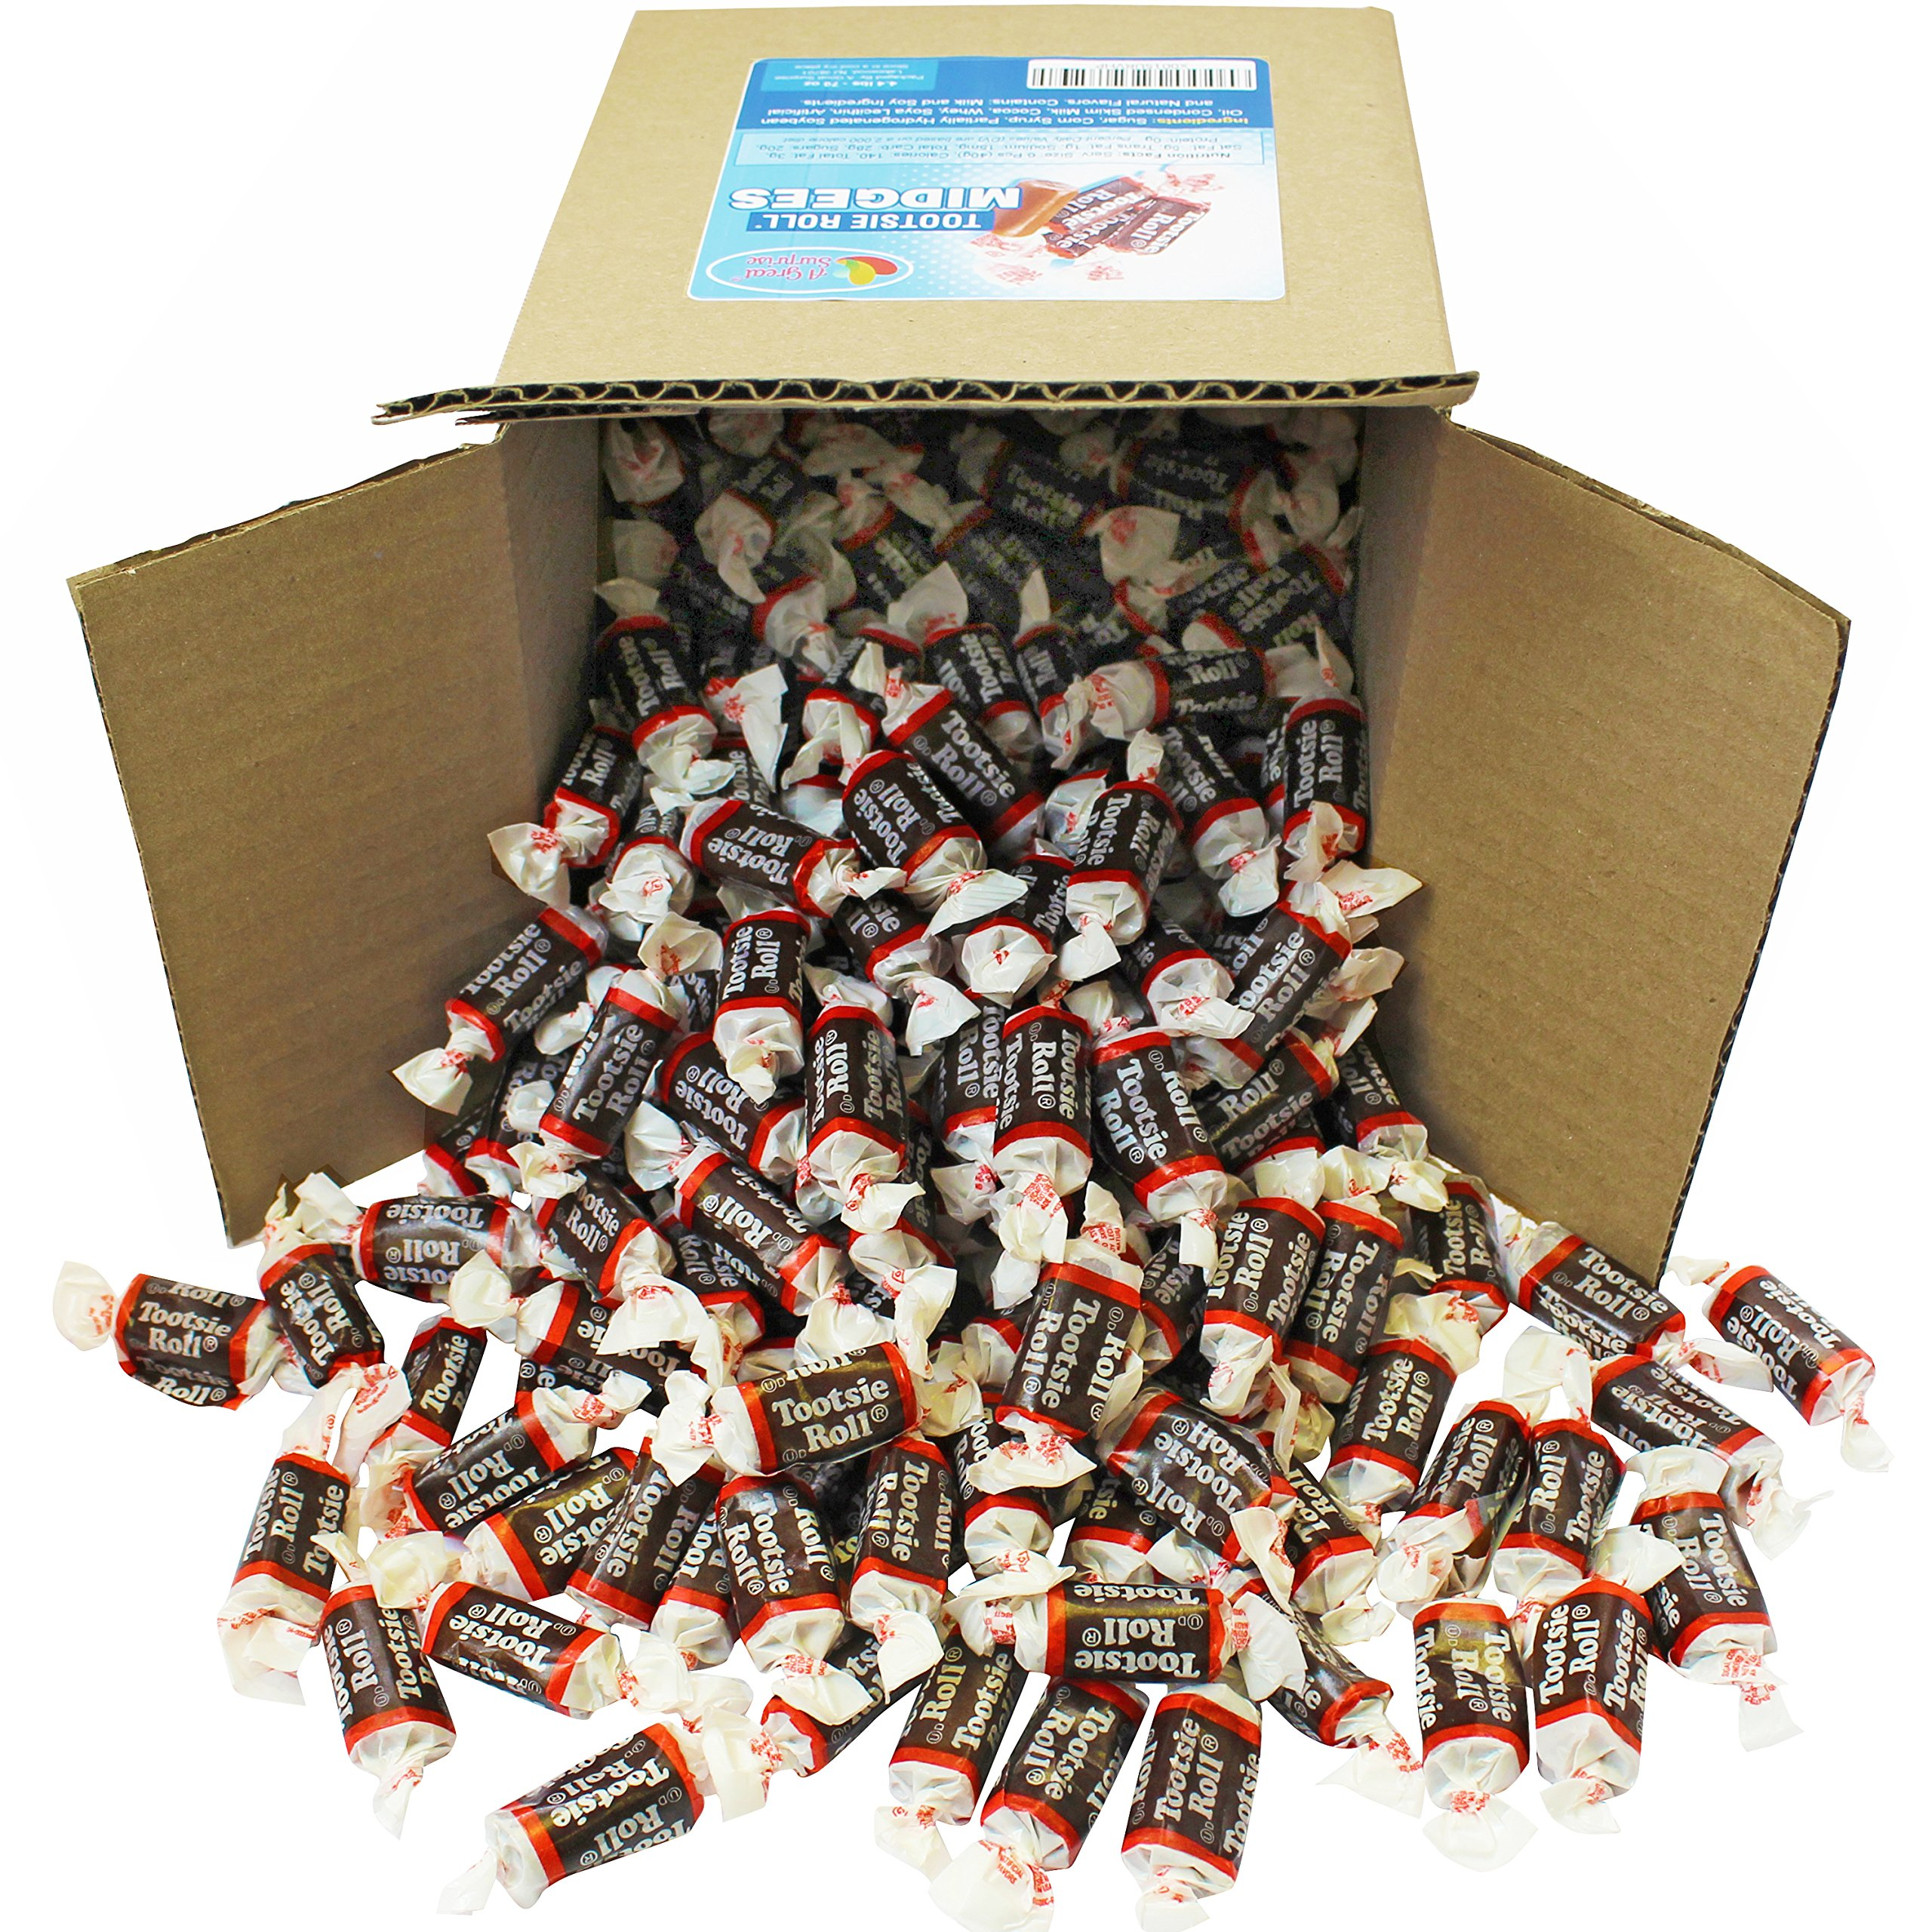 Tootsie Roll Midgees in 6x6x6 Box Bulk Candy 4.4 lbs 70oz by A Great Surprise